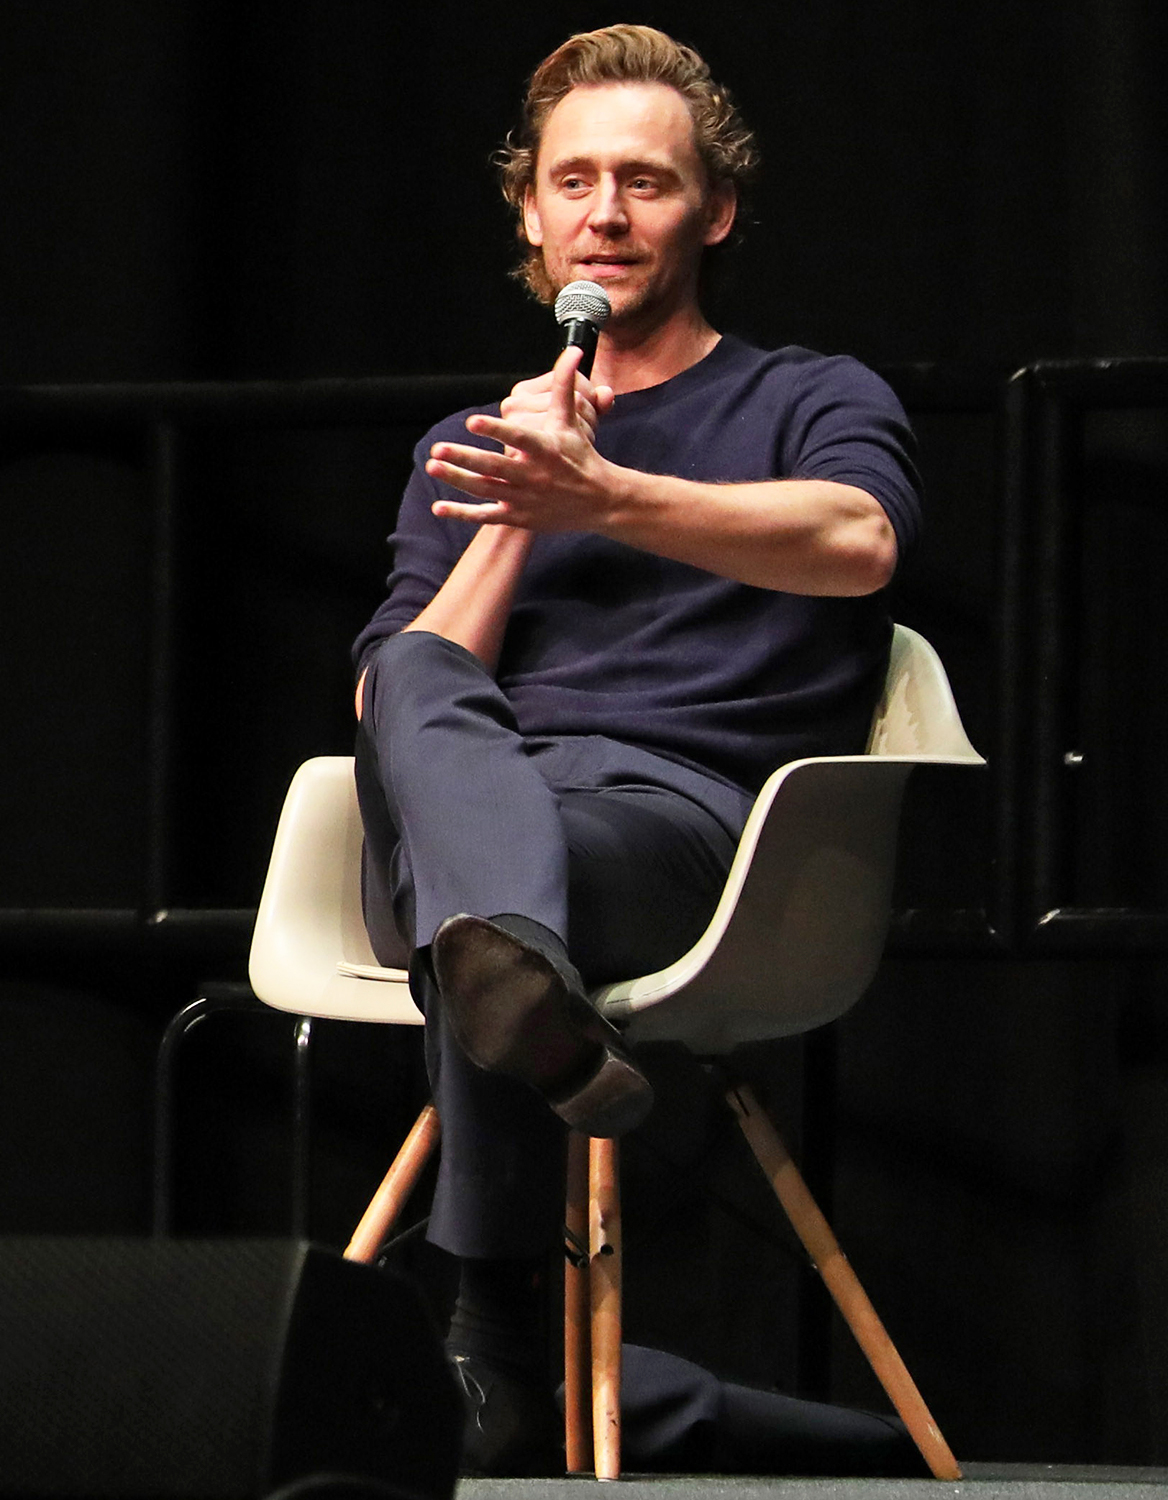 Tom Hiddleston who plays Loki, speaking at MCM London Comic Con at Excel in London on October 23, 2021.